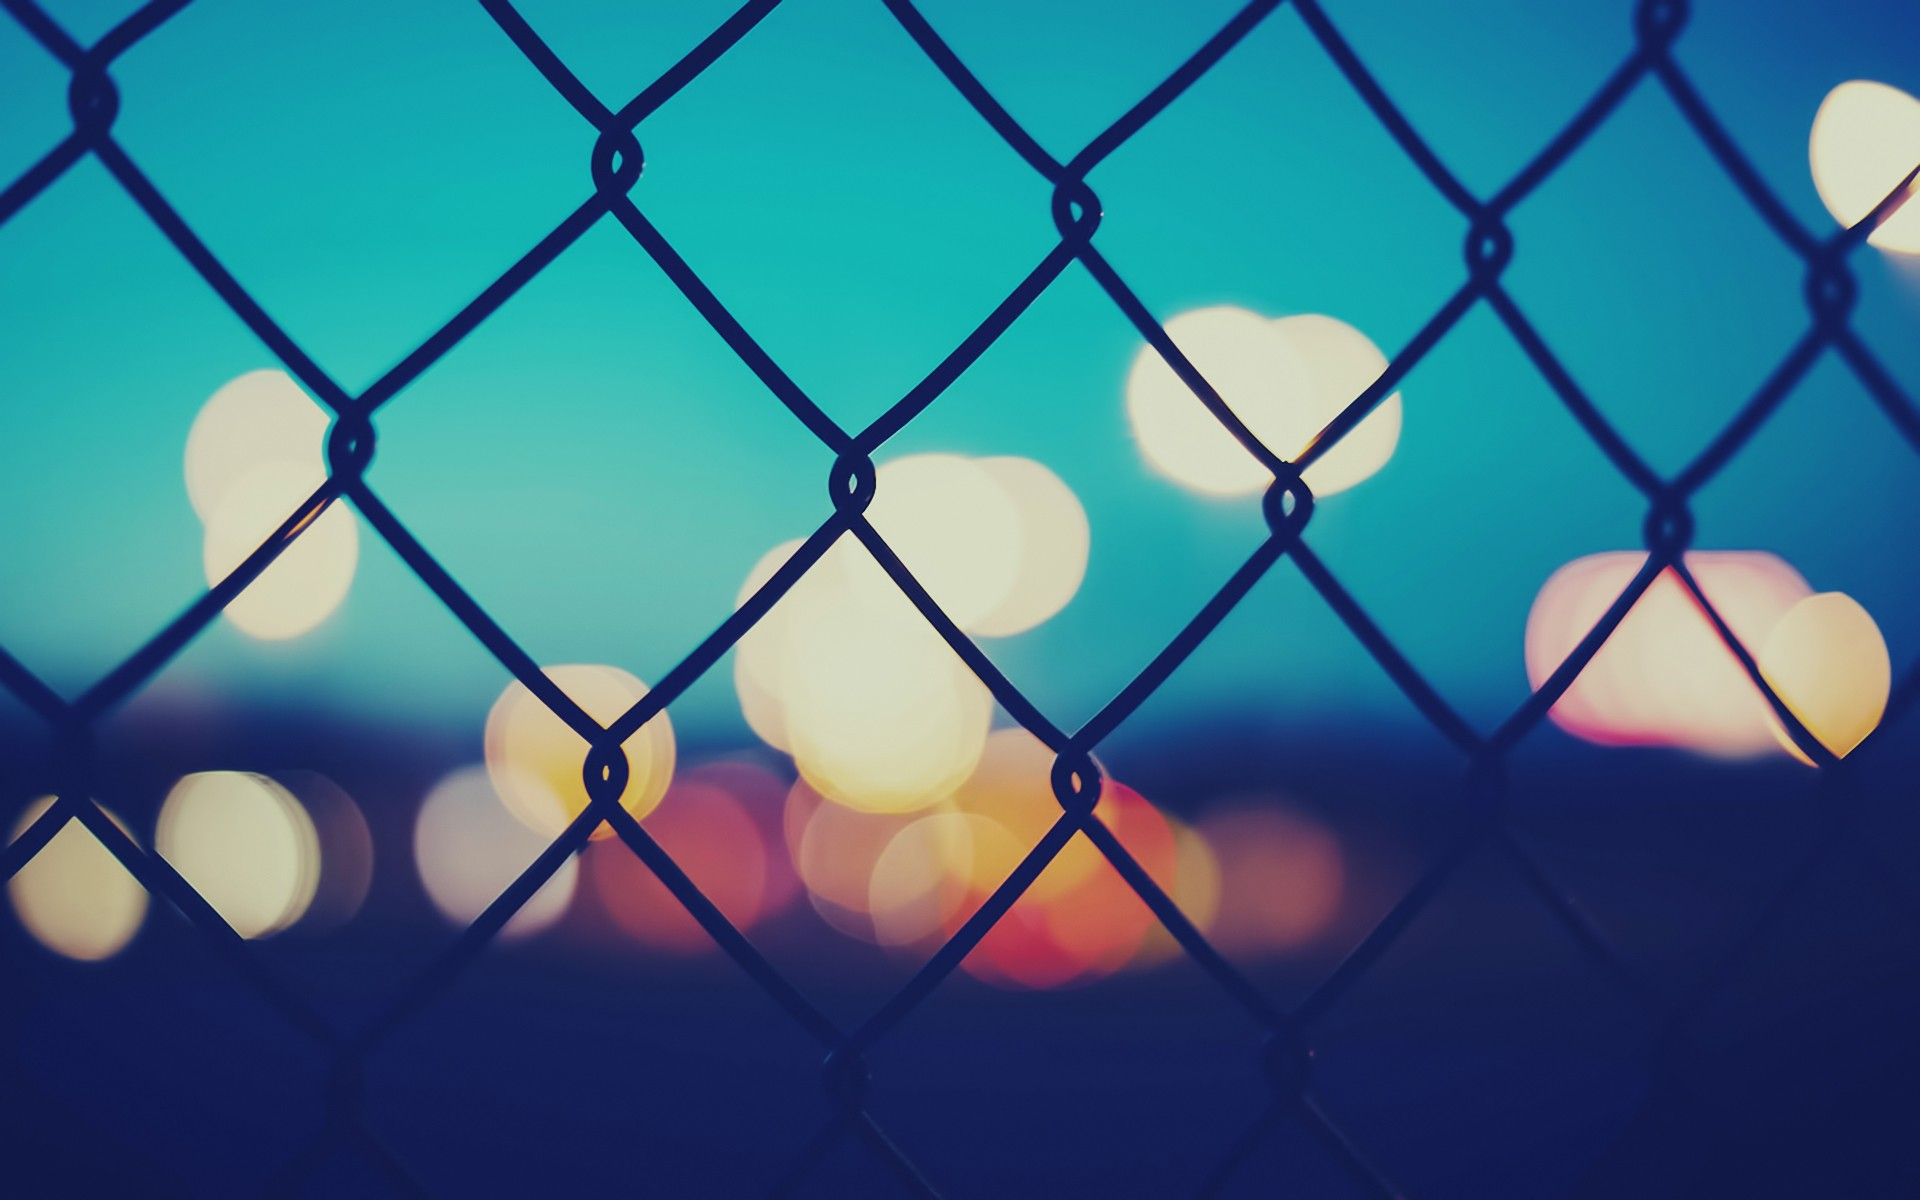 Fence Background Wallpaper : Fences bokeh chain link fence wallpaper  1920x1200  19691 ...